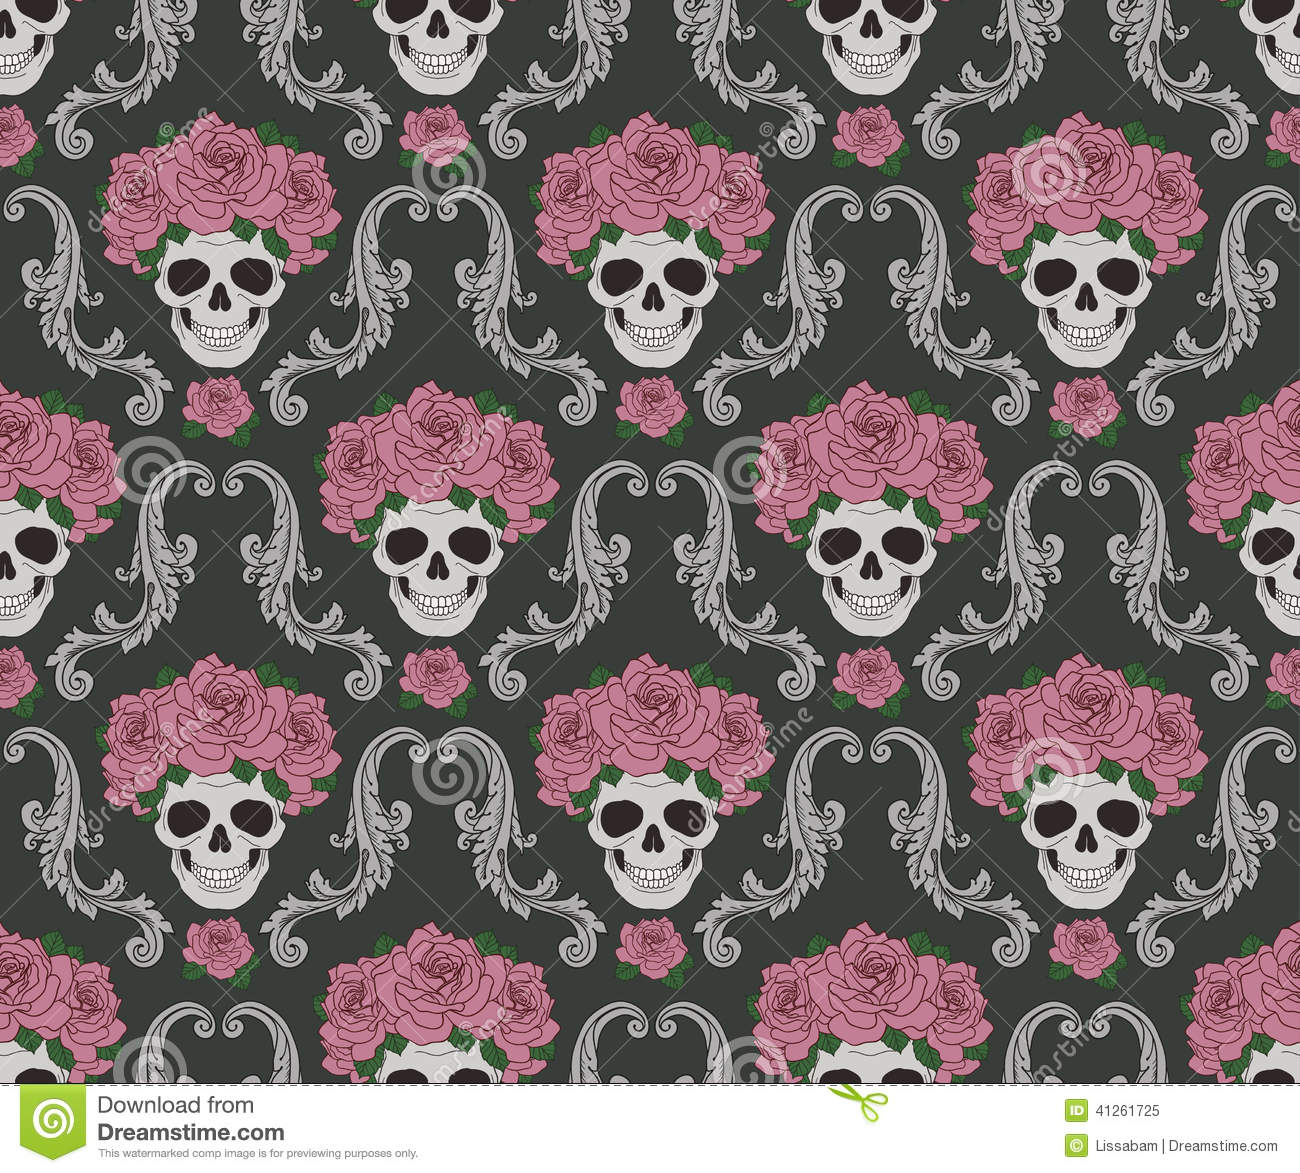 Skulls And Roses Damask Pattern Stock Vector - Image: 41261725